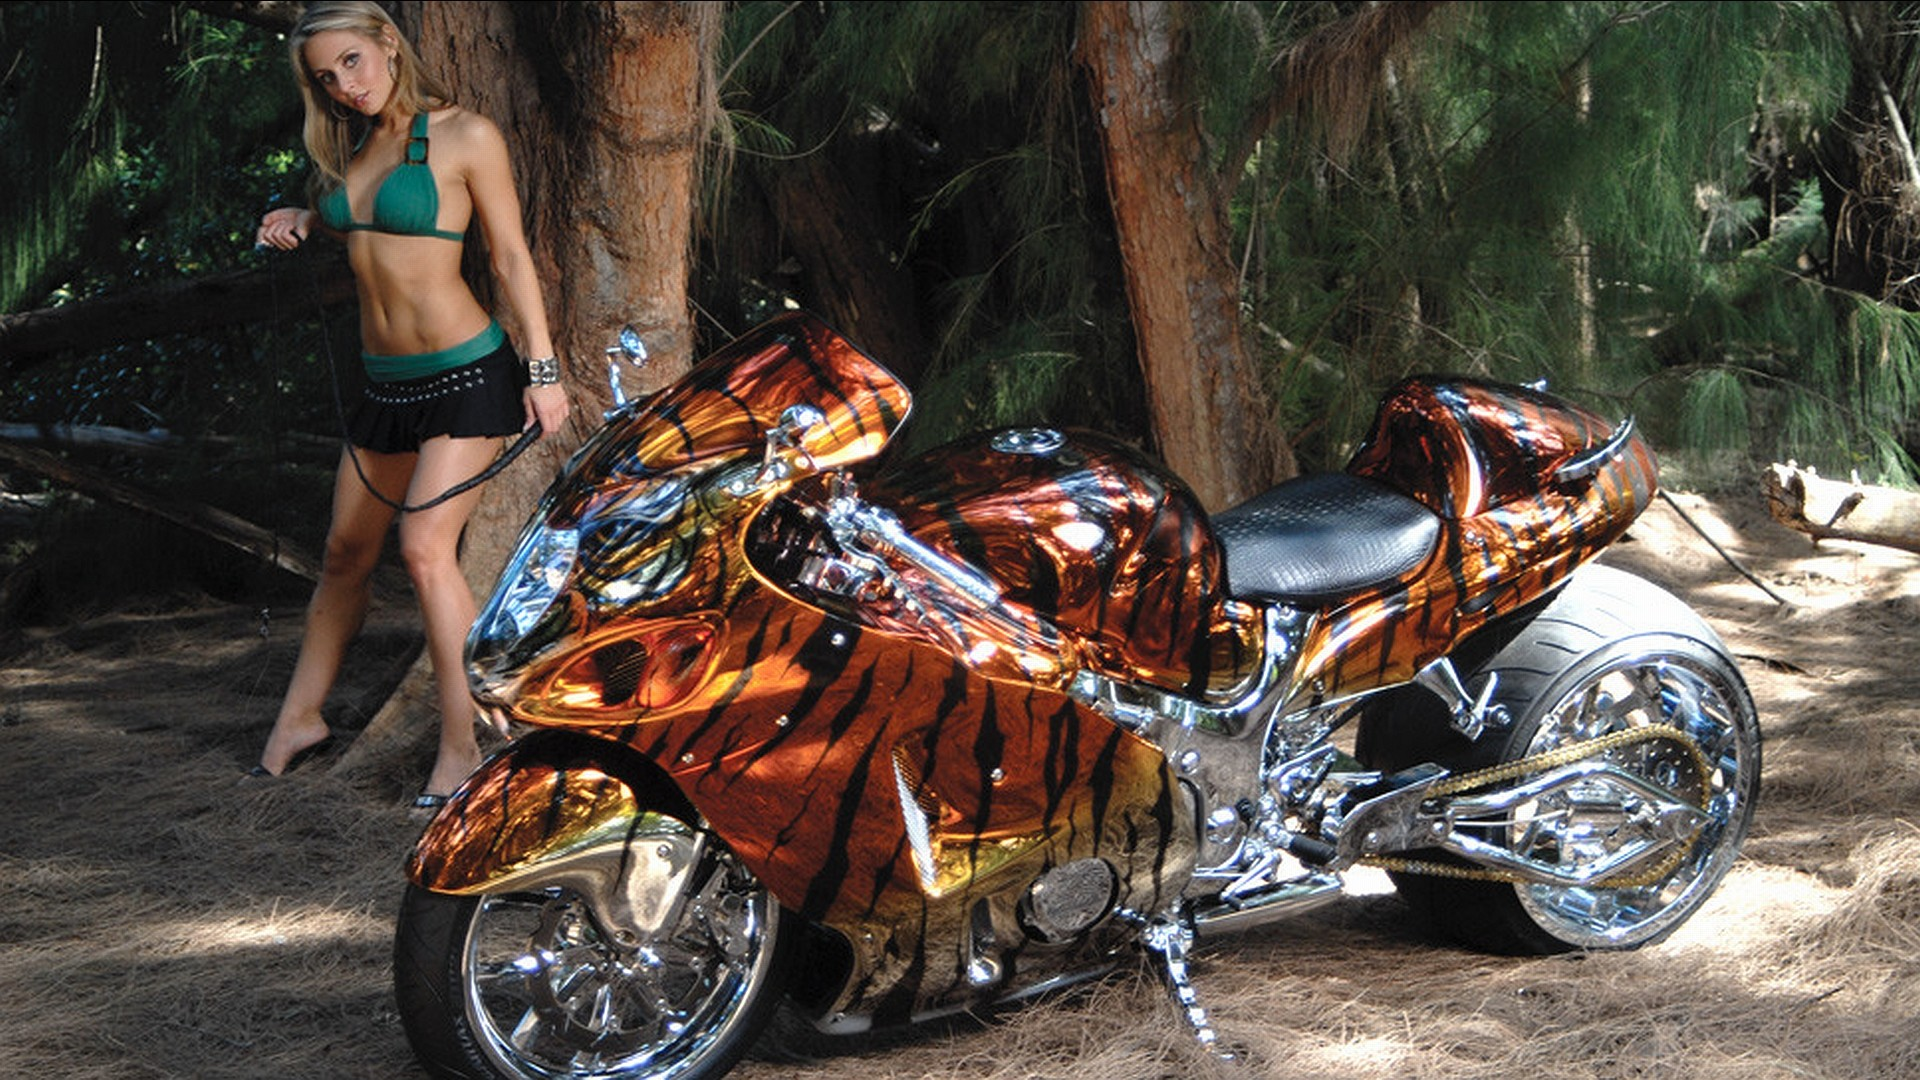 girls and motorcycles Wallpaper Background | 44646